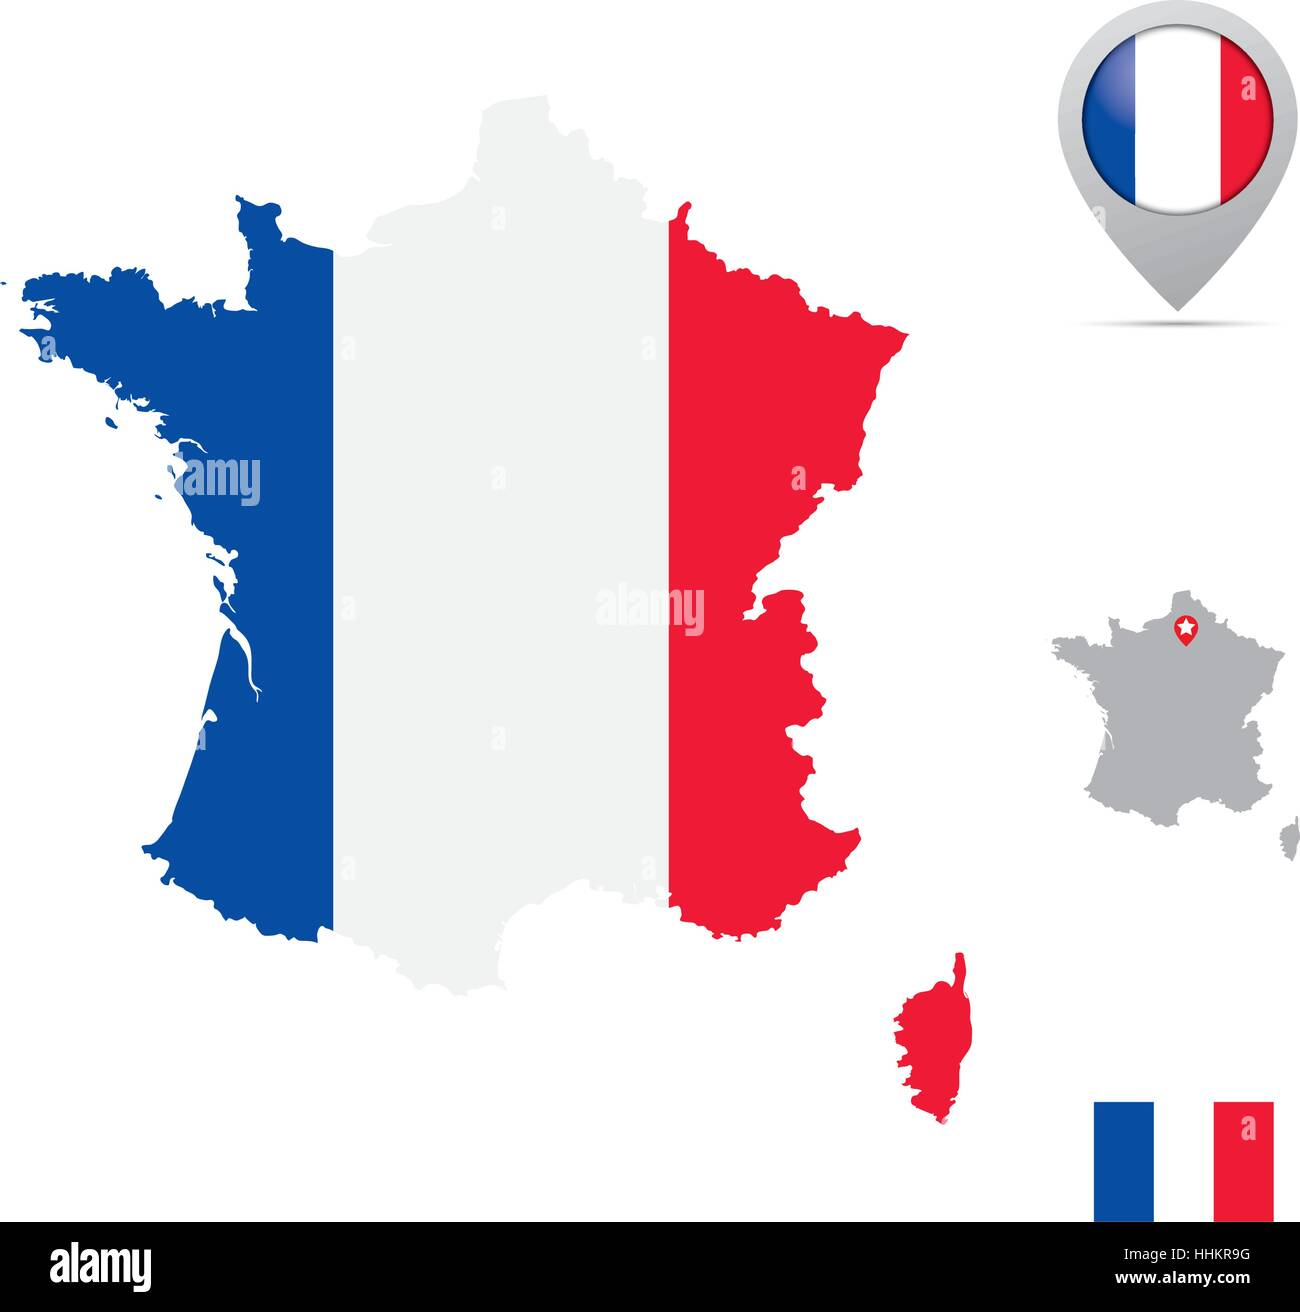 France Map In National Flag Colors Flag Marker And Location Of Its